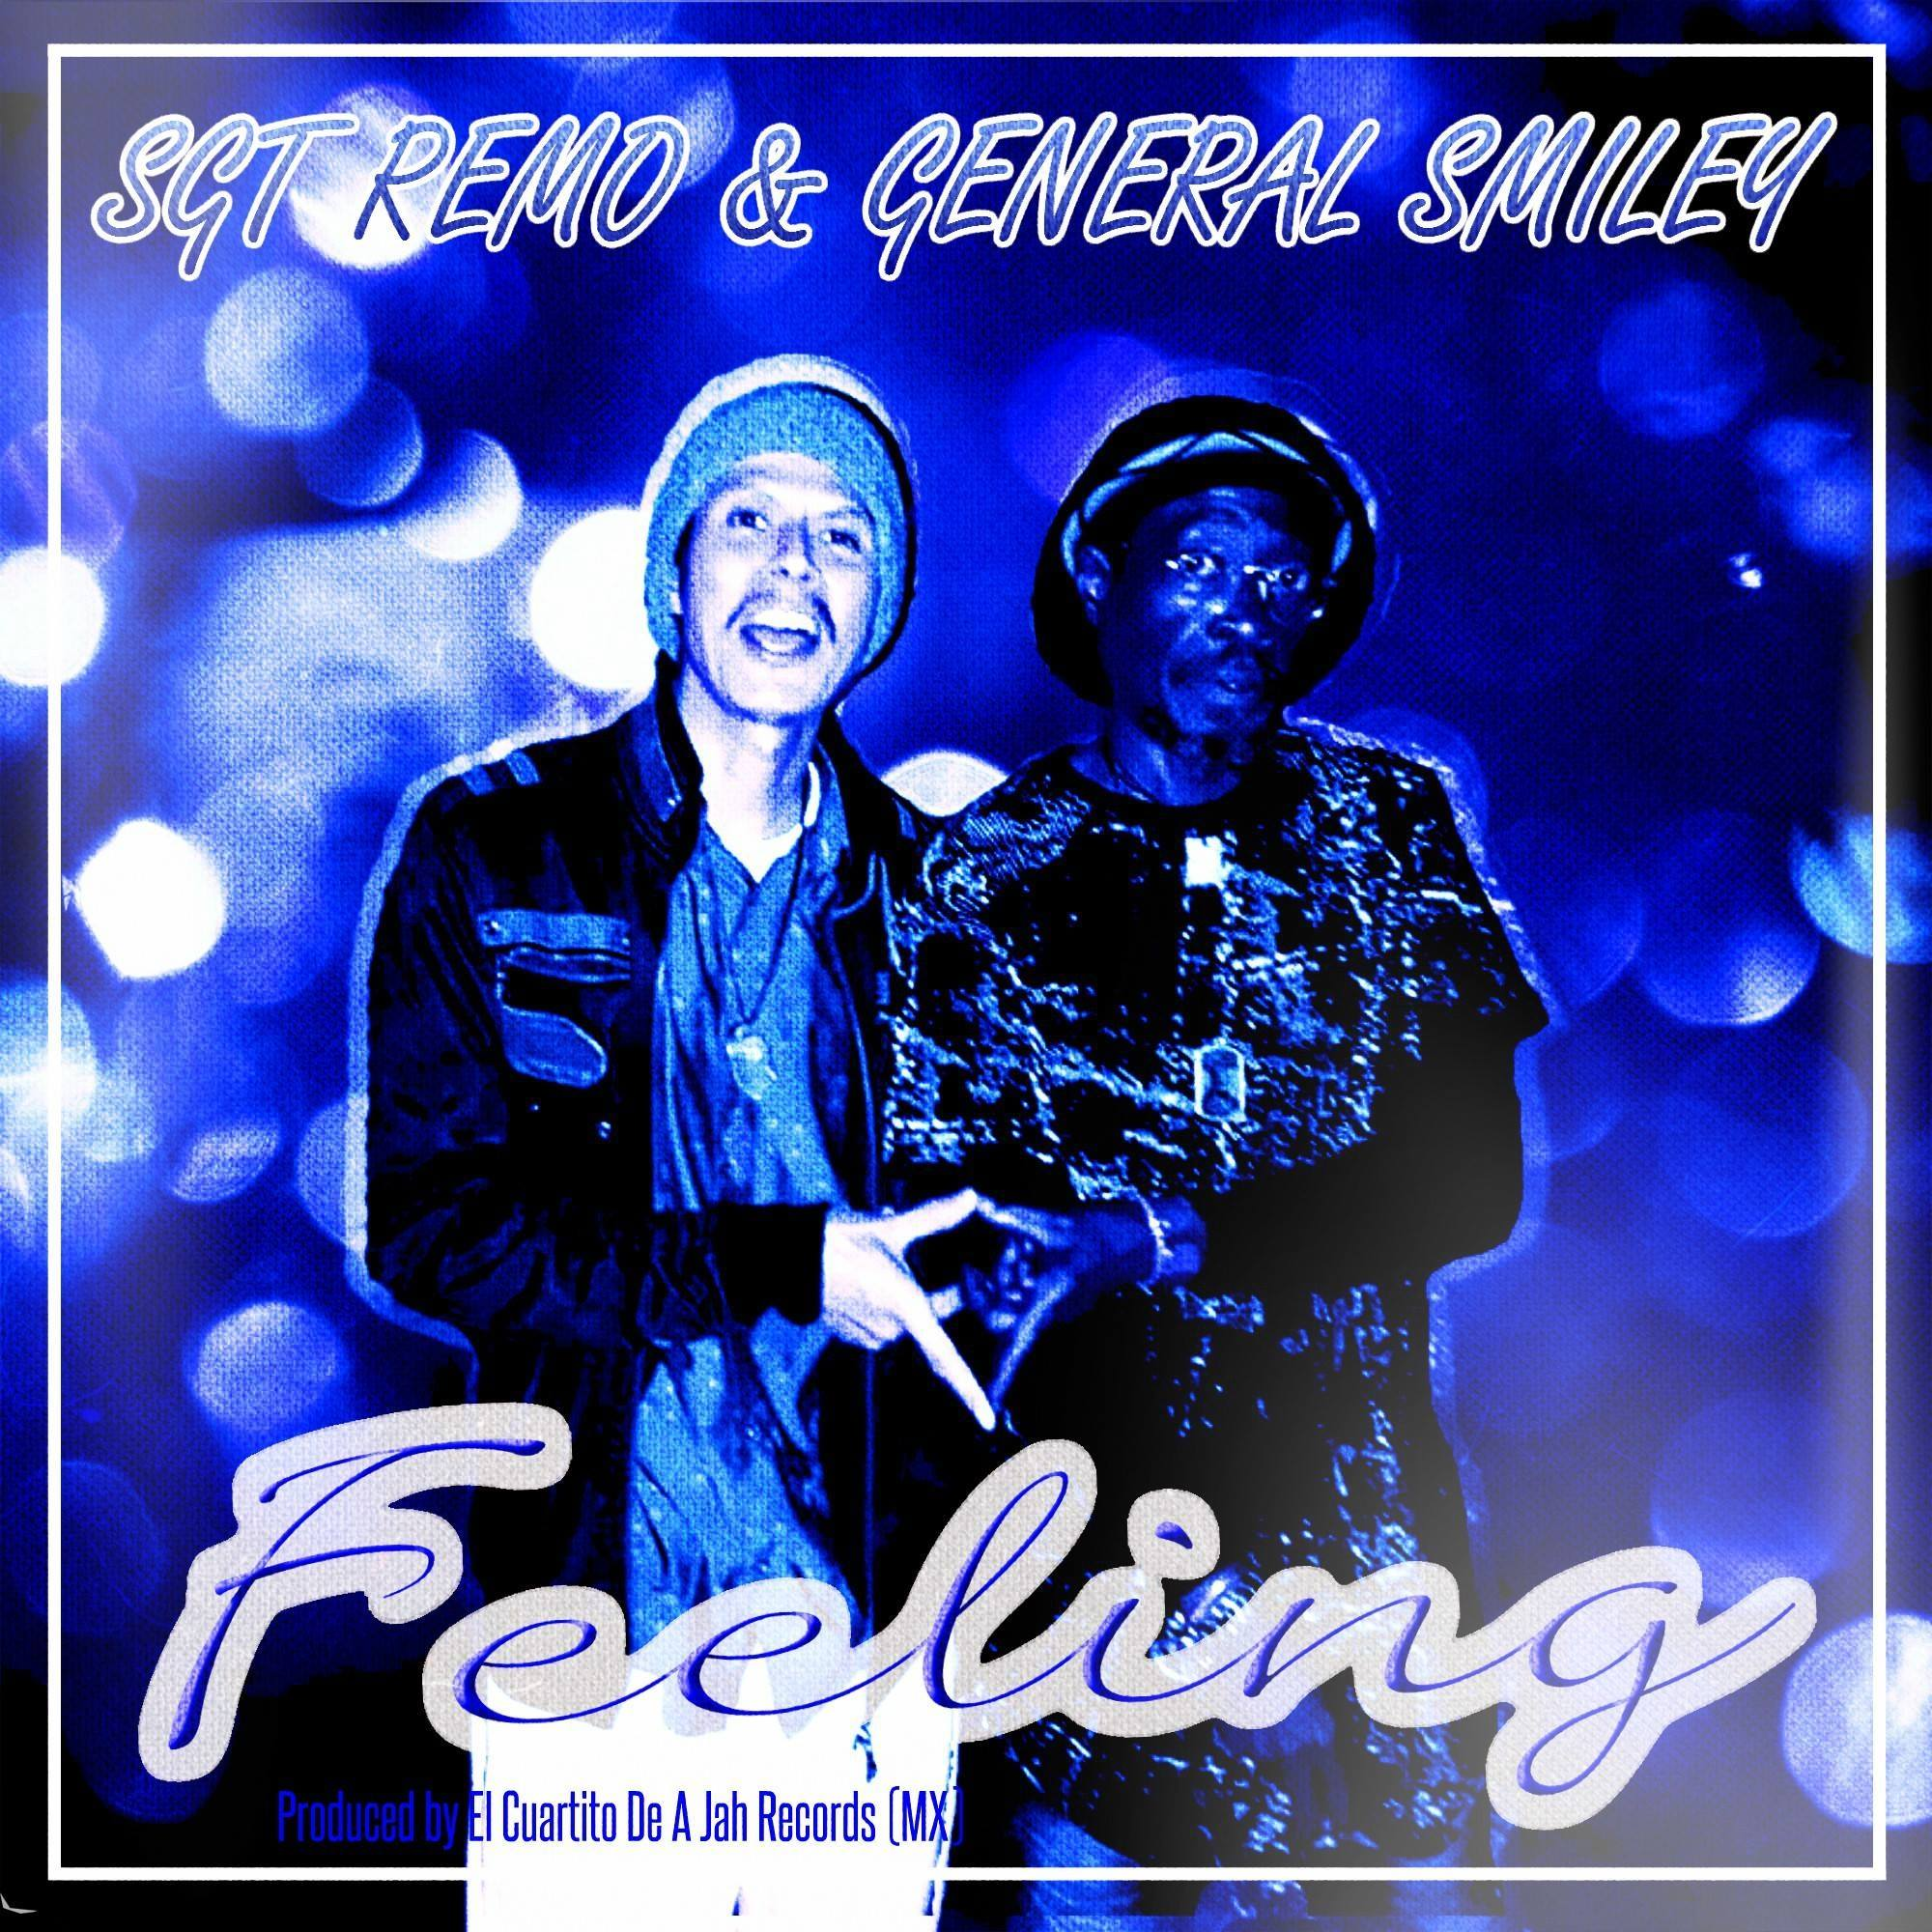 Sgt. Remo & General Smiley - Feeling